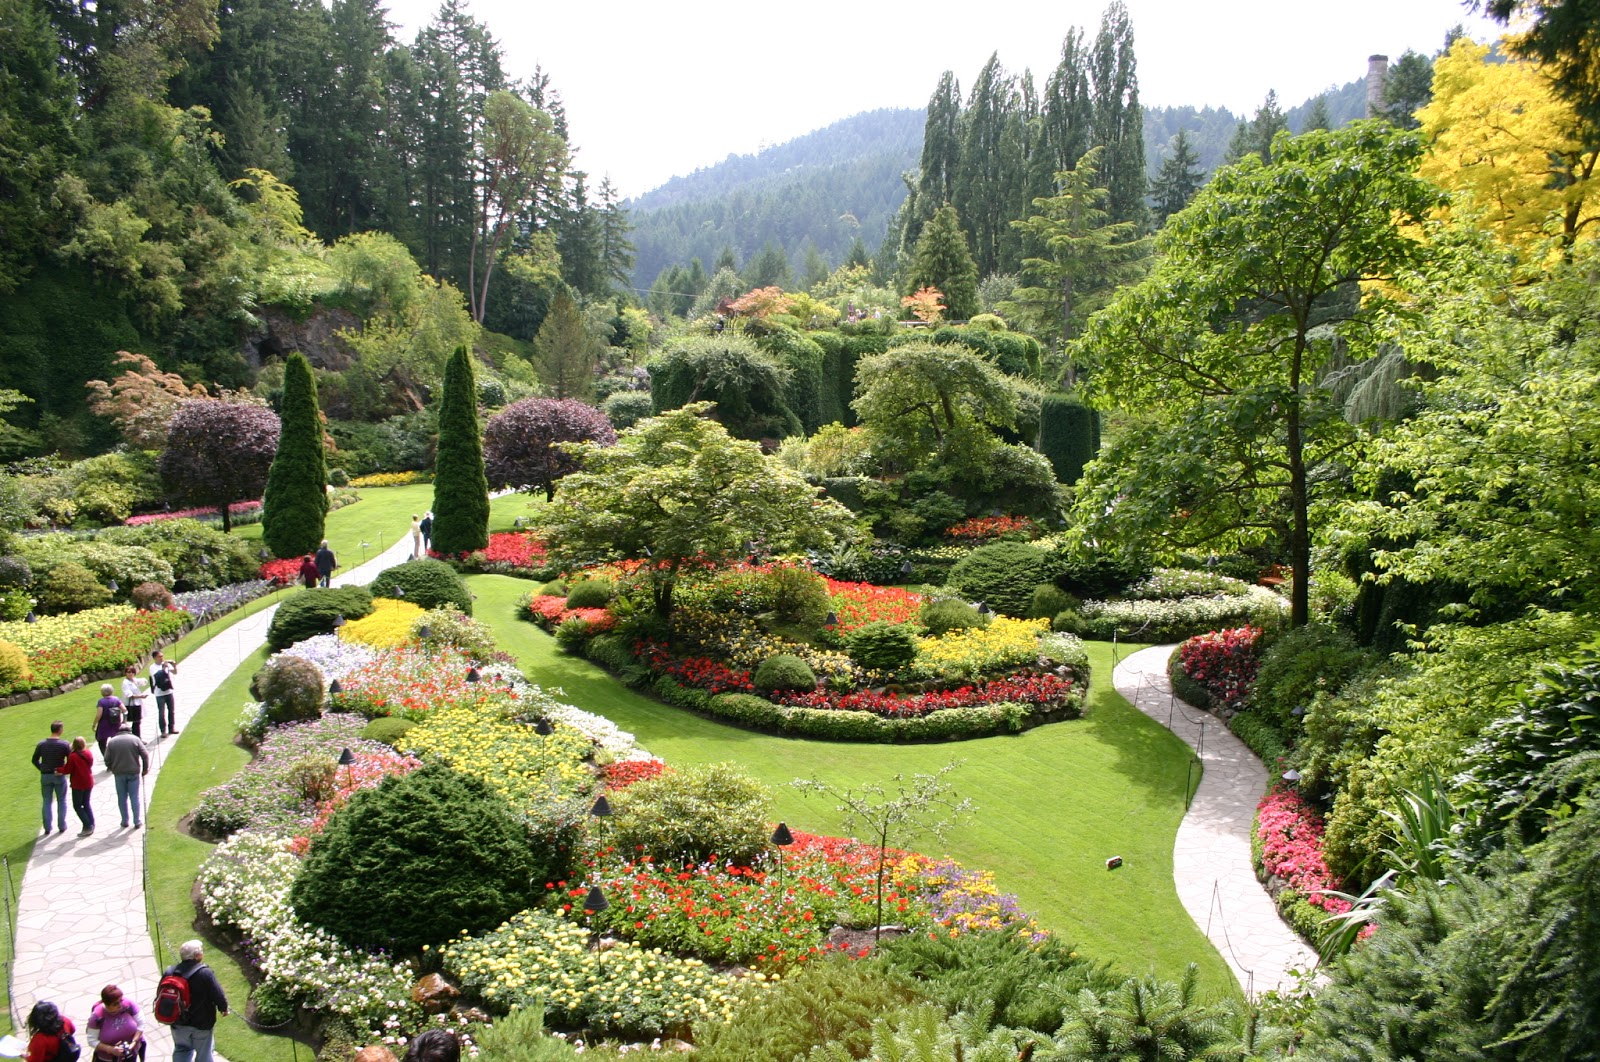 Hotels In Victoria Bc Near Butchart Gardens